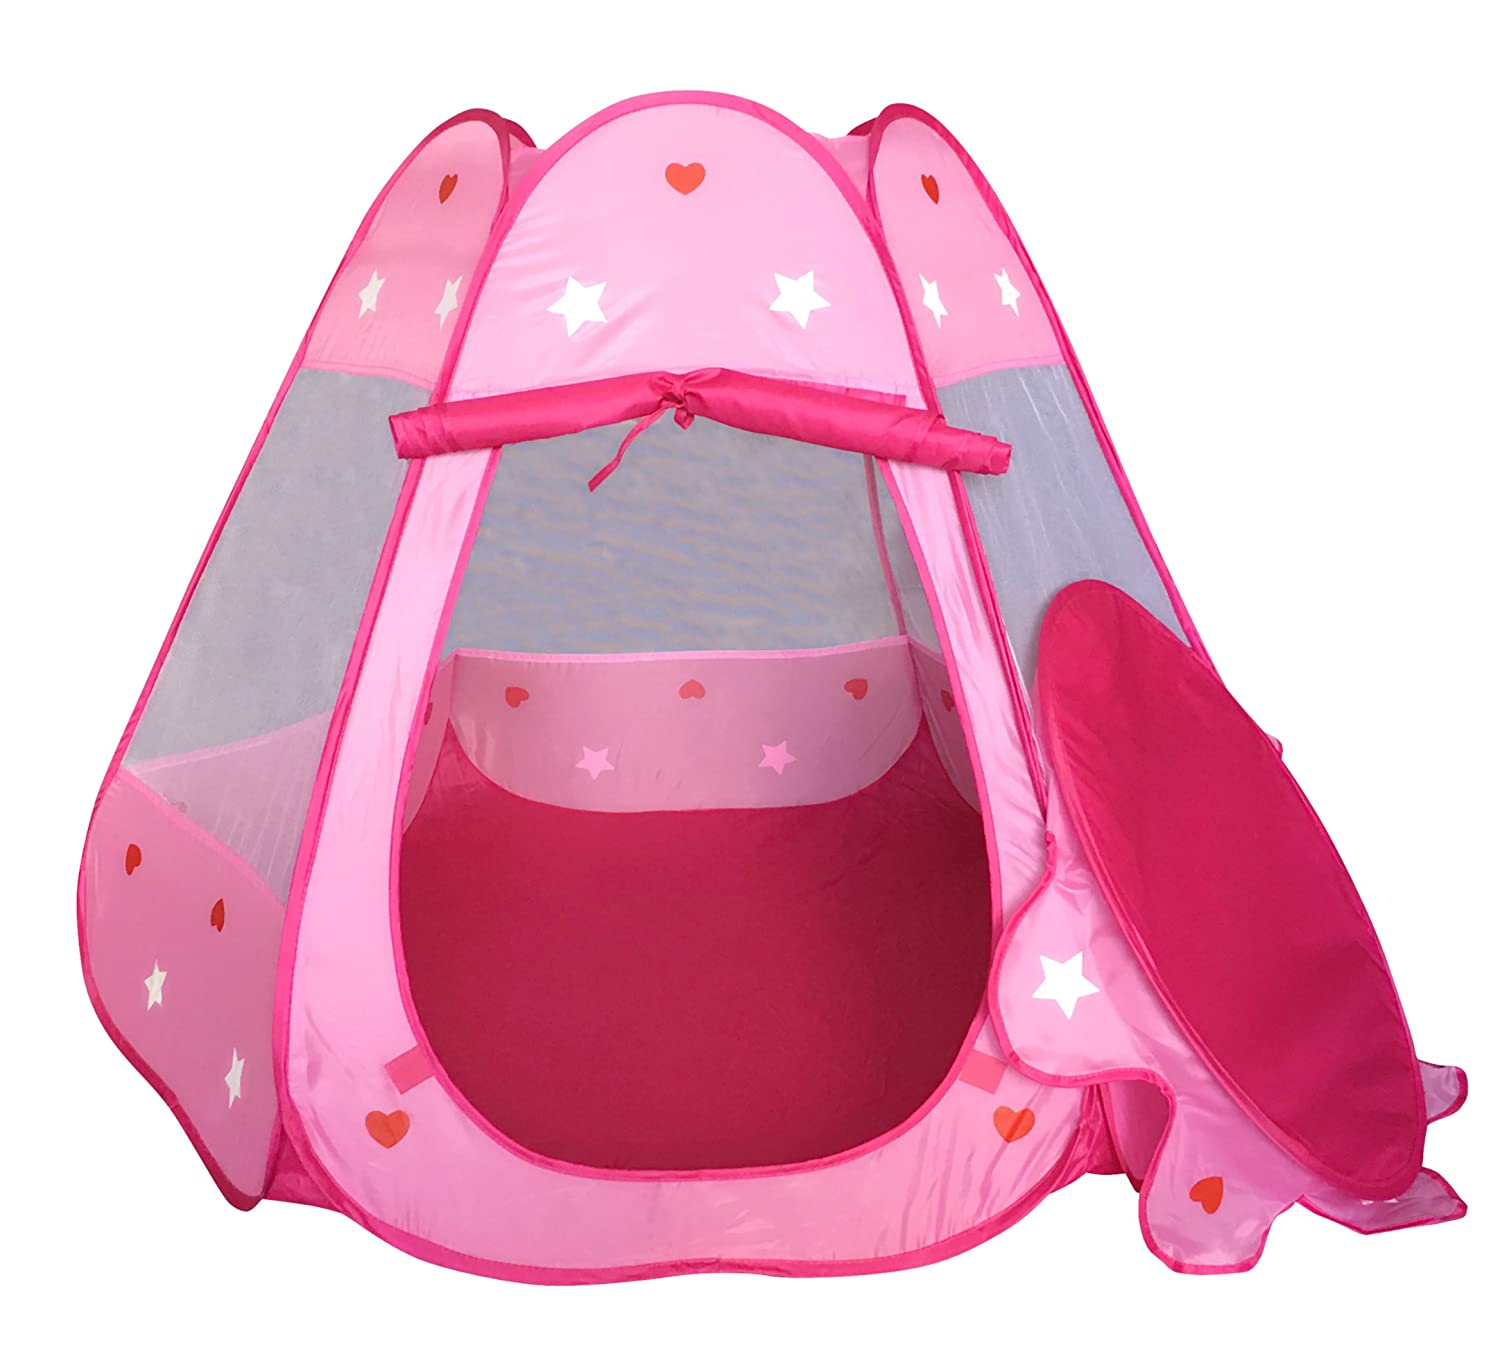 Amazon.com SueSport Girls Pink Princess Play Tent Indoor and Outdoor Children Play Tent for Girls Toys u0026 Games  sc 1 st  Amazon.com & Amazon.com: SueSport Girls Pink Princess Play Tent Indoor and ...